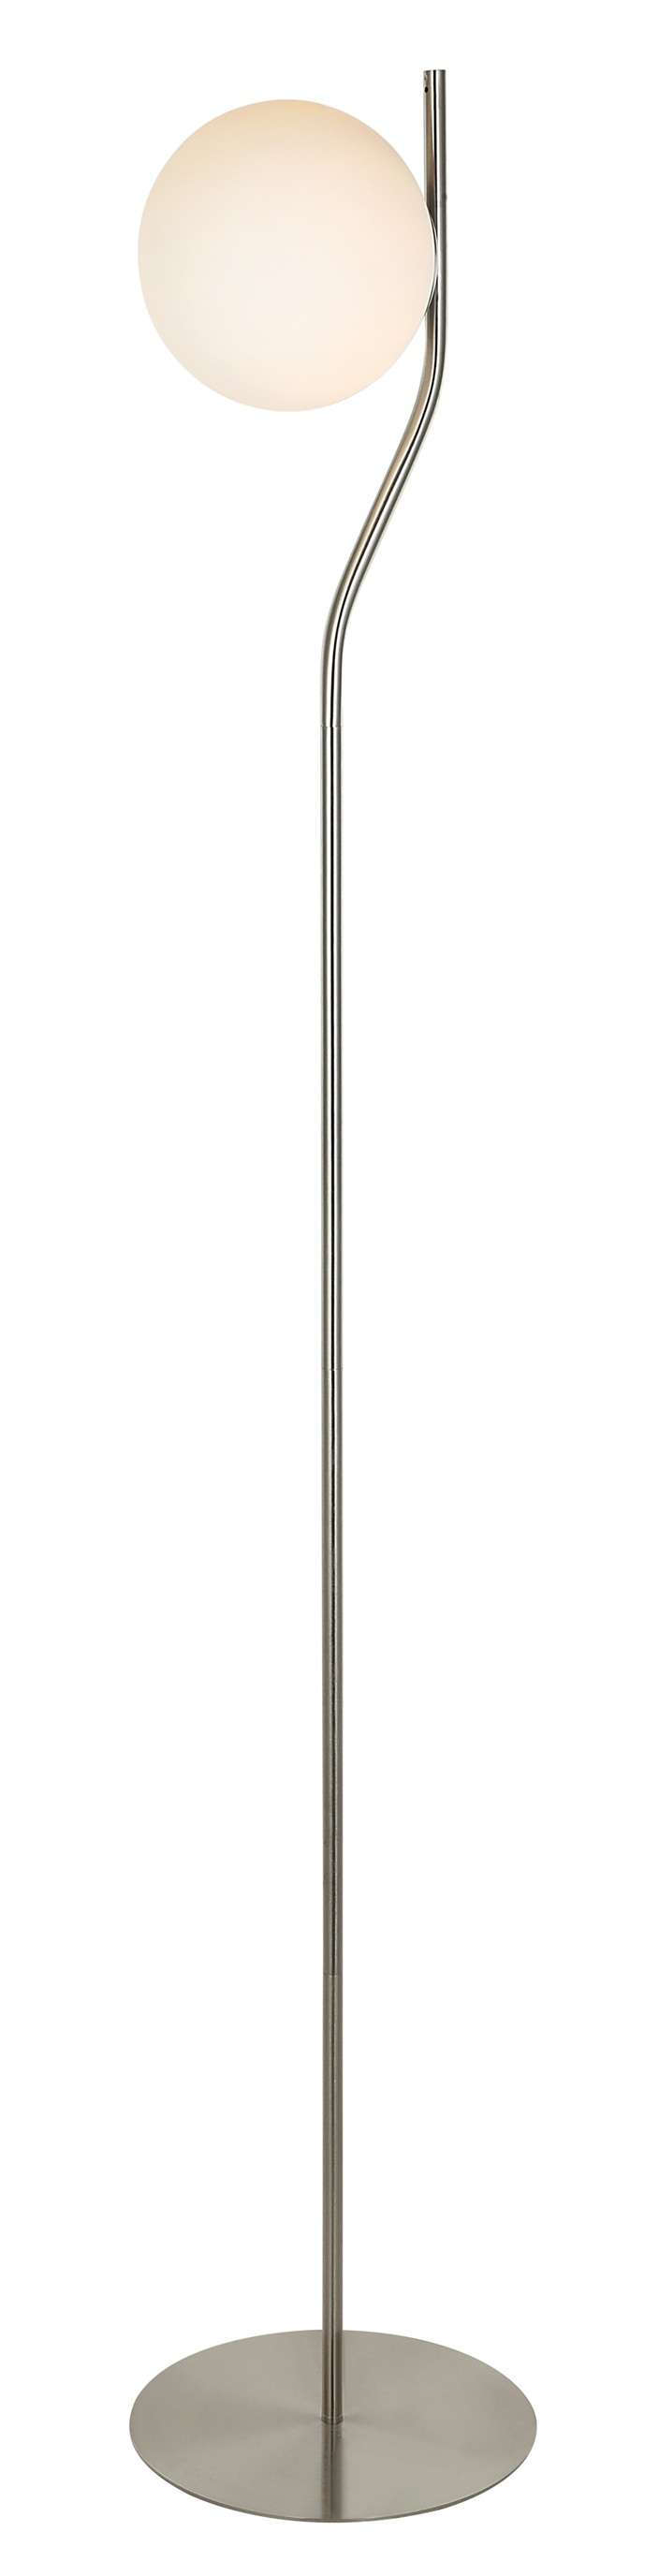 Saintly contemporary floor reading lamps free design for kitchen-1